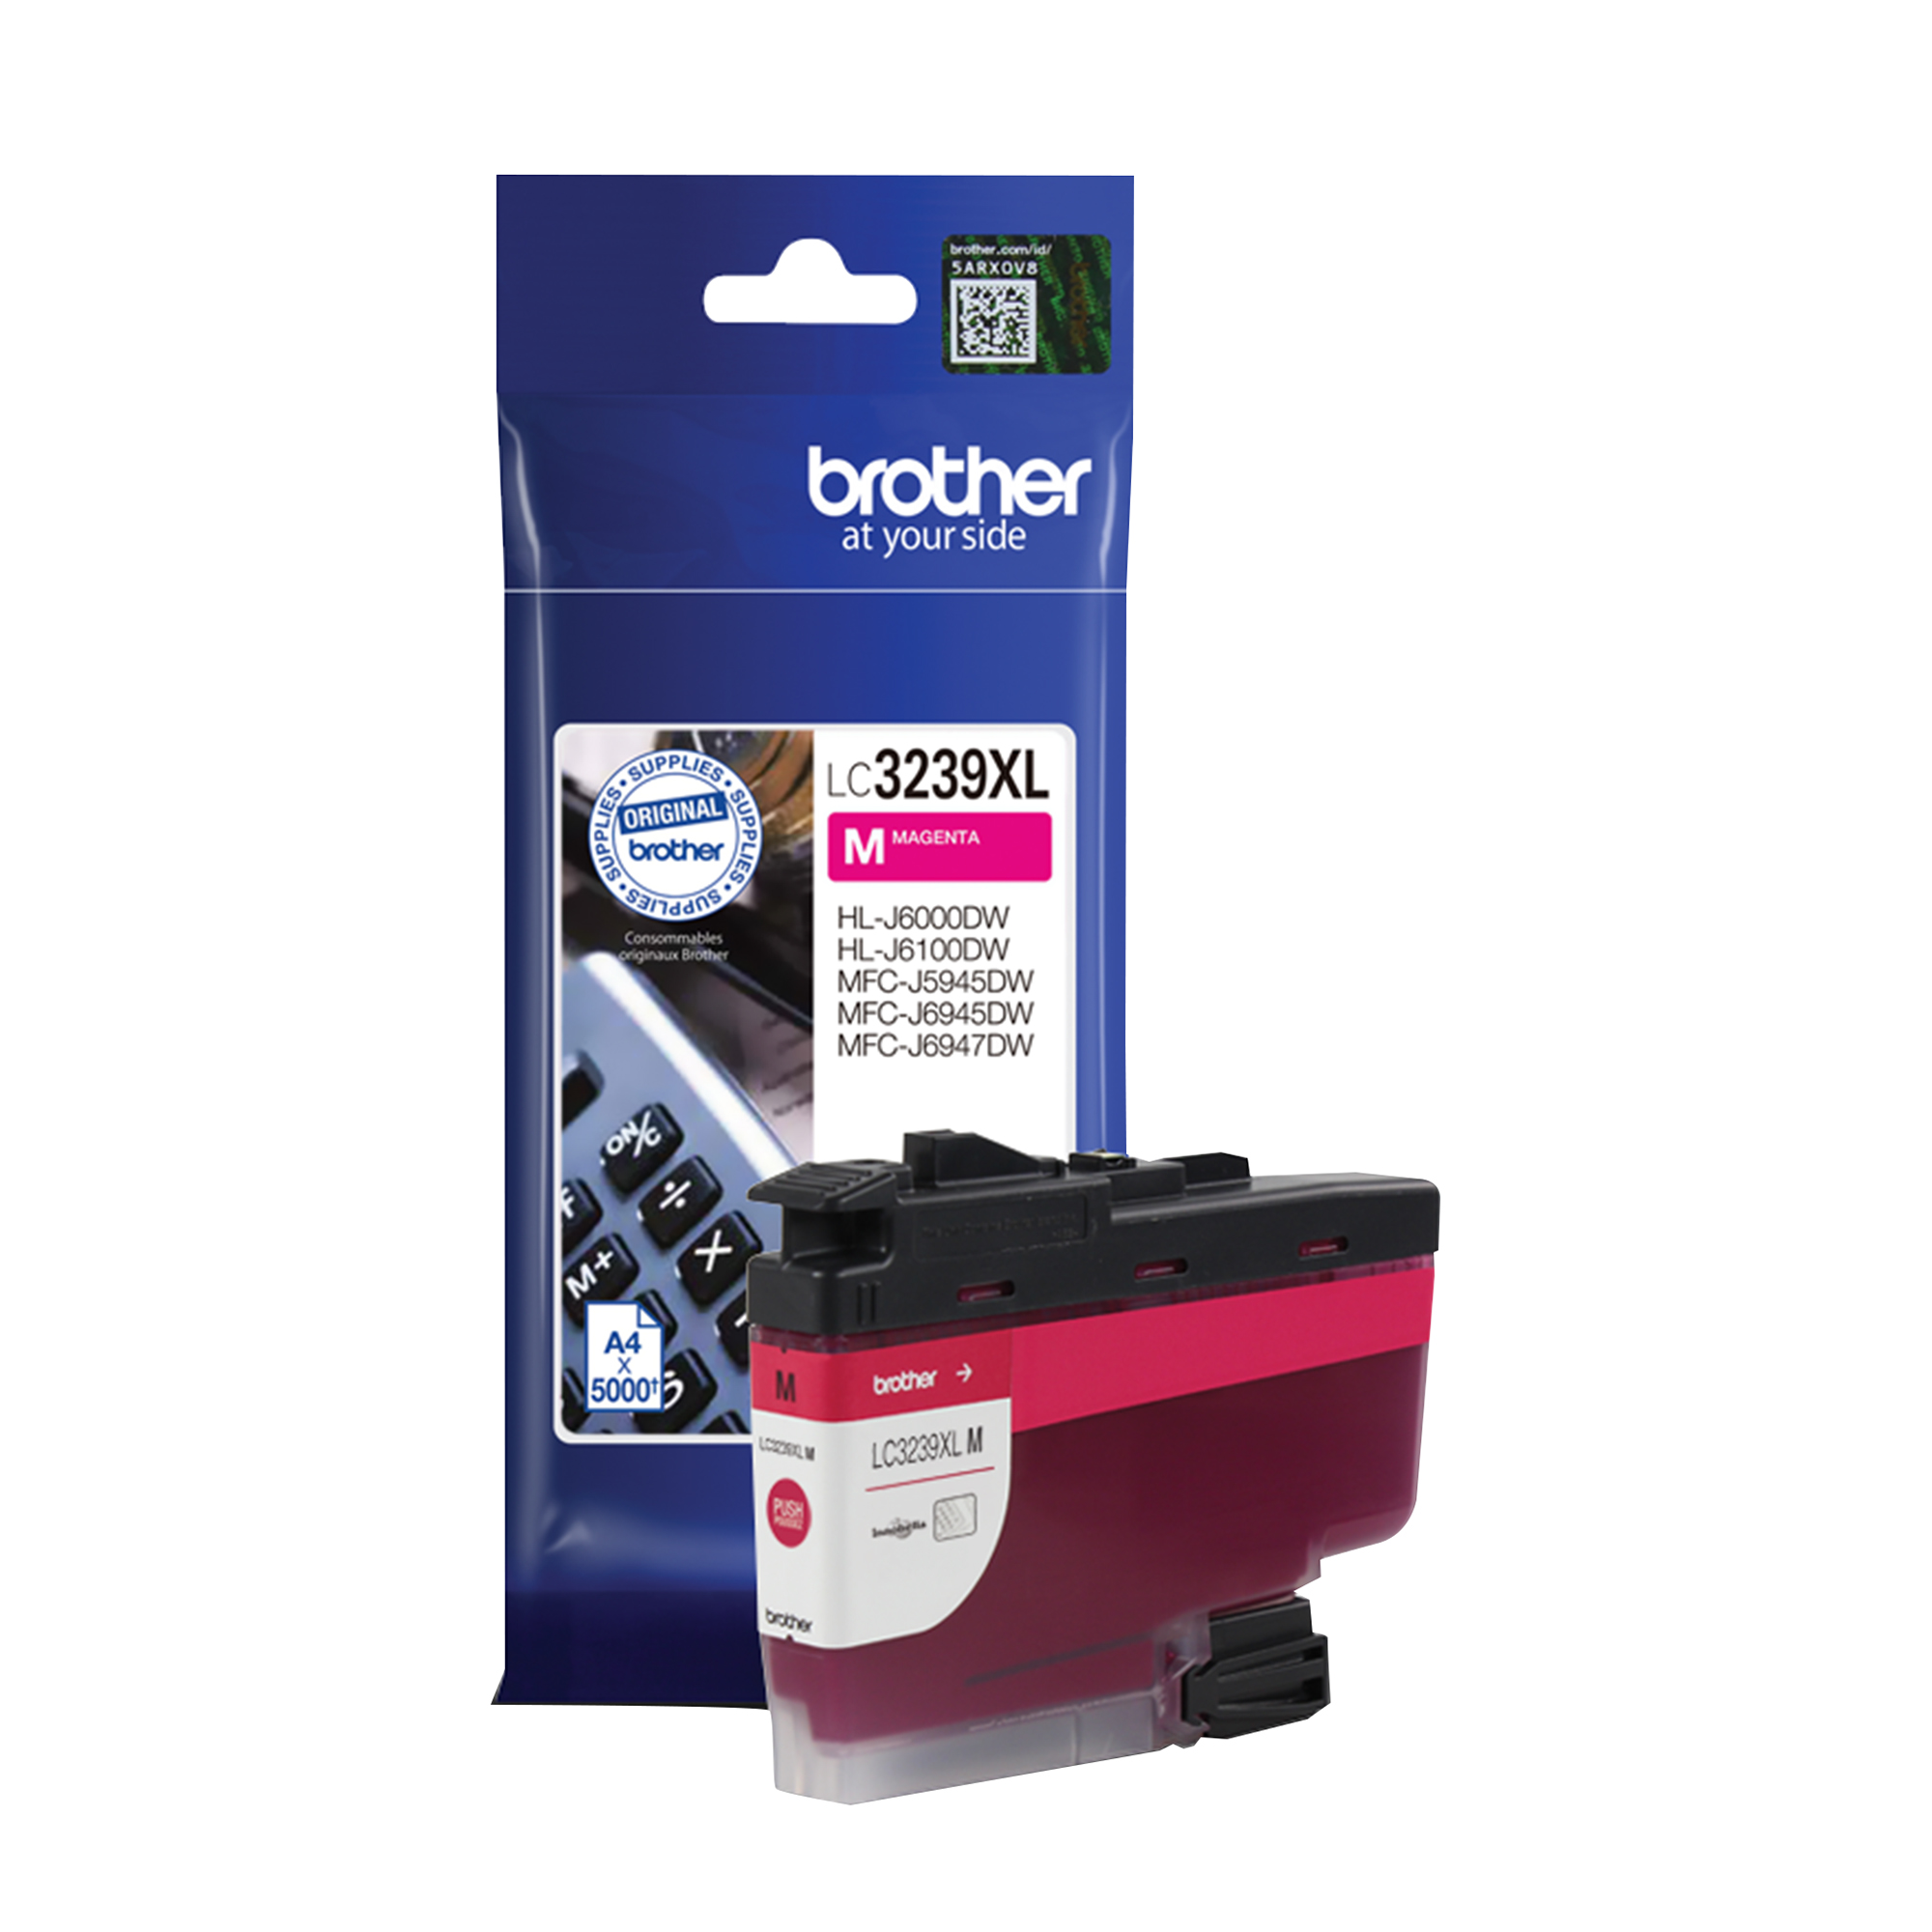 Brother LC3239XLM Ink Cartridge High Yield Page Life 5000pp Magenta Ref LC3239XLM